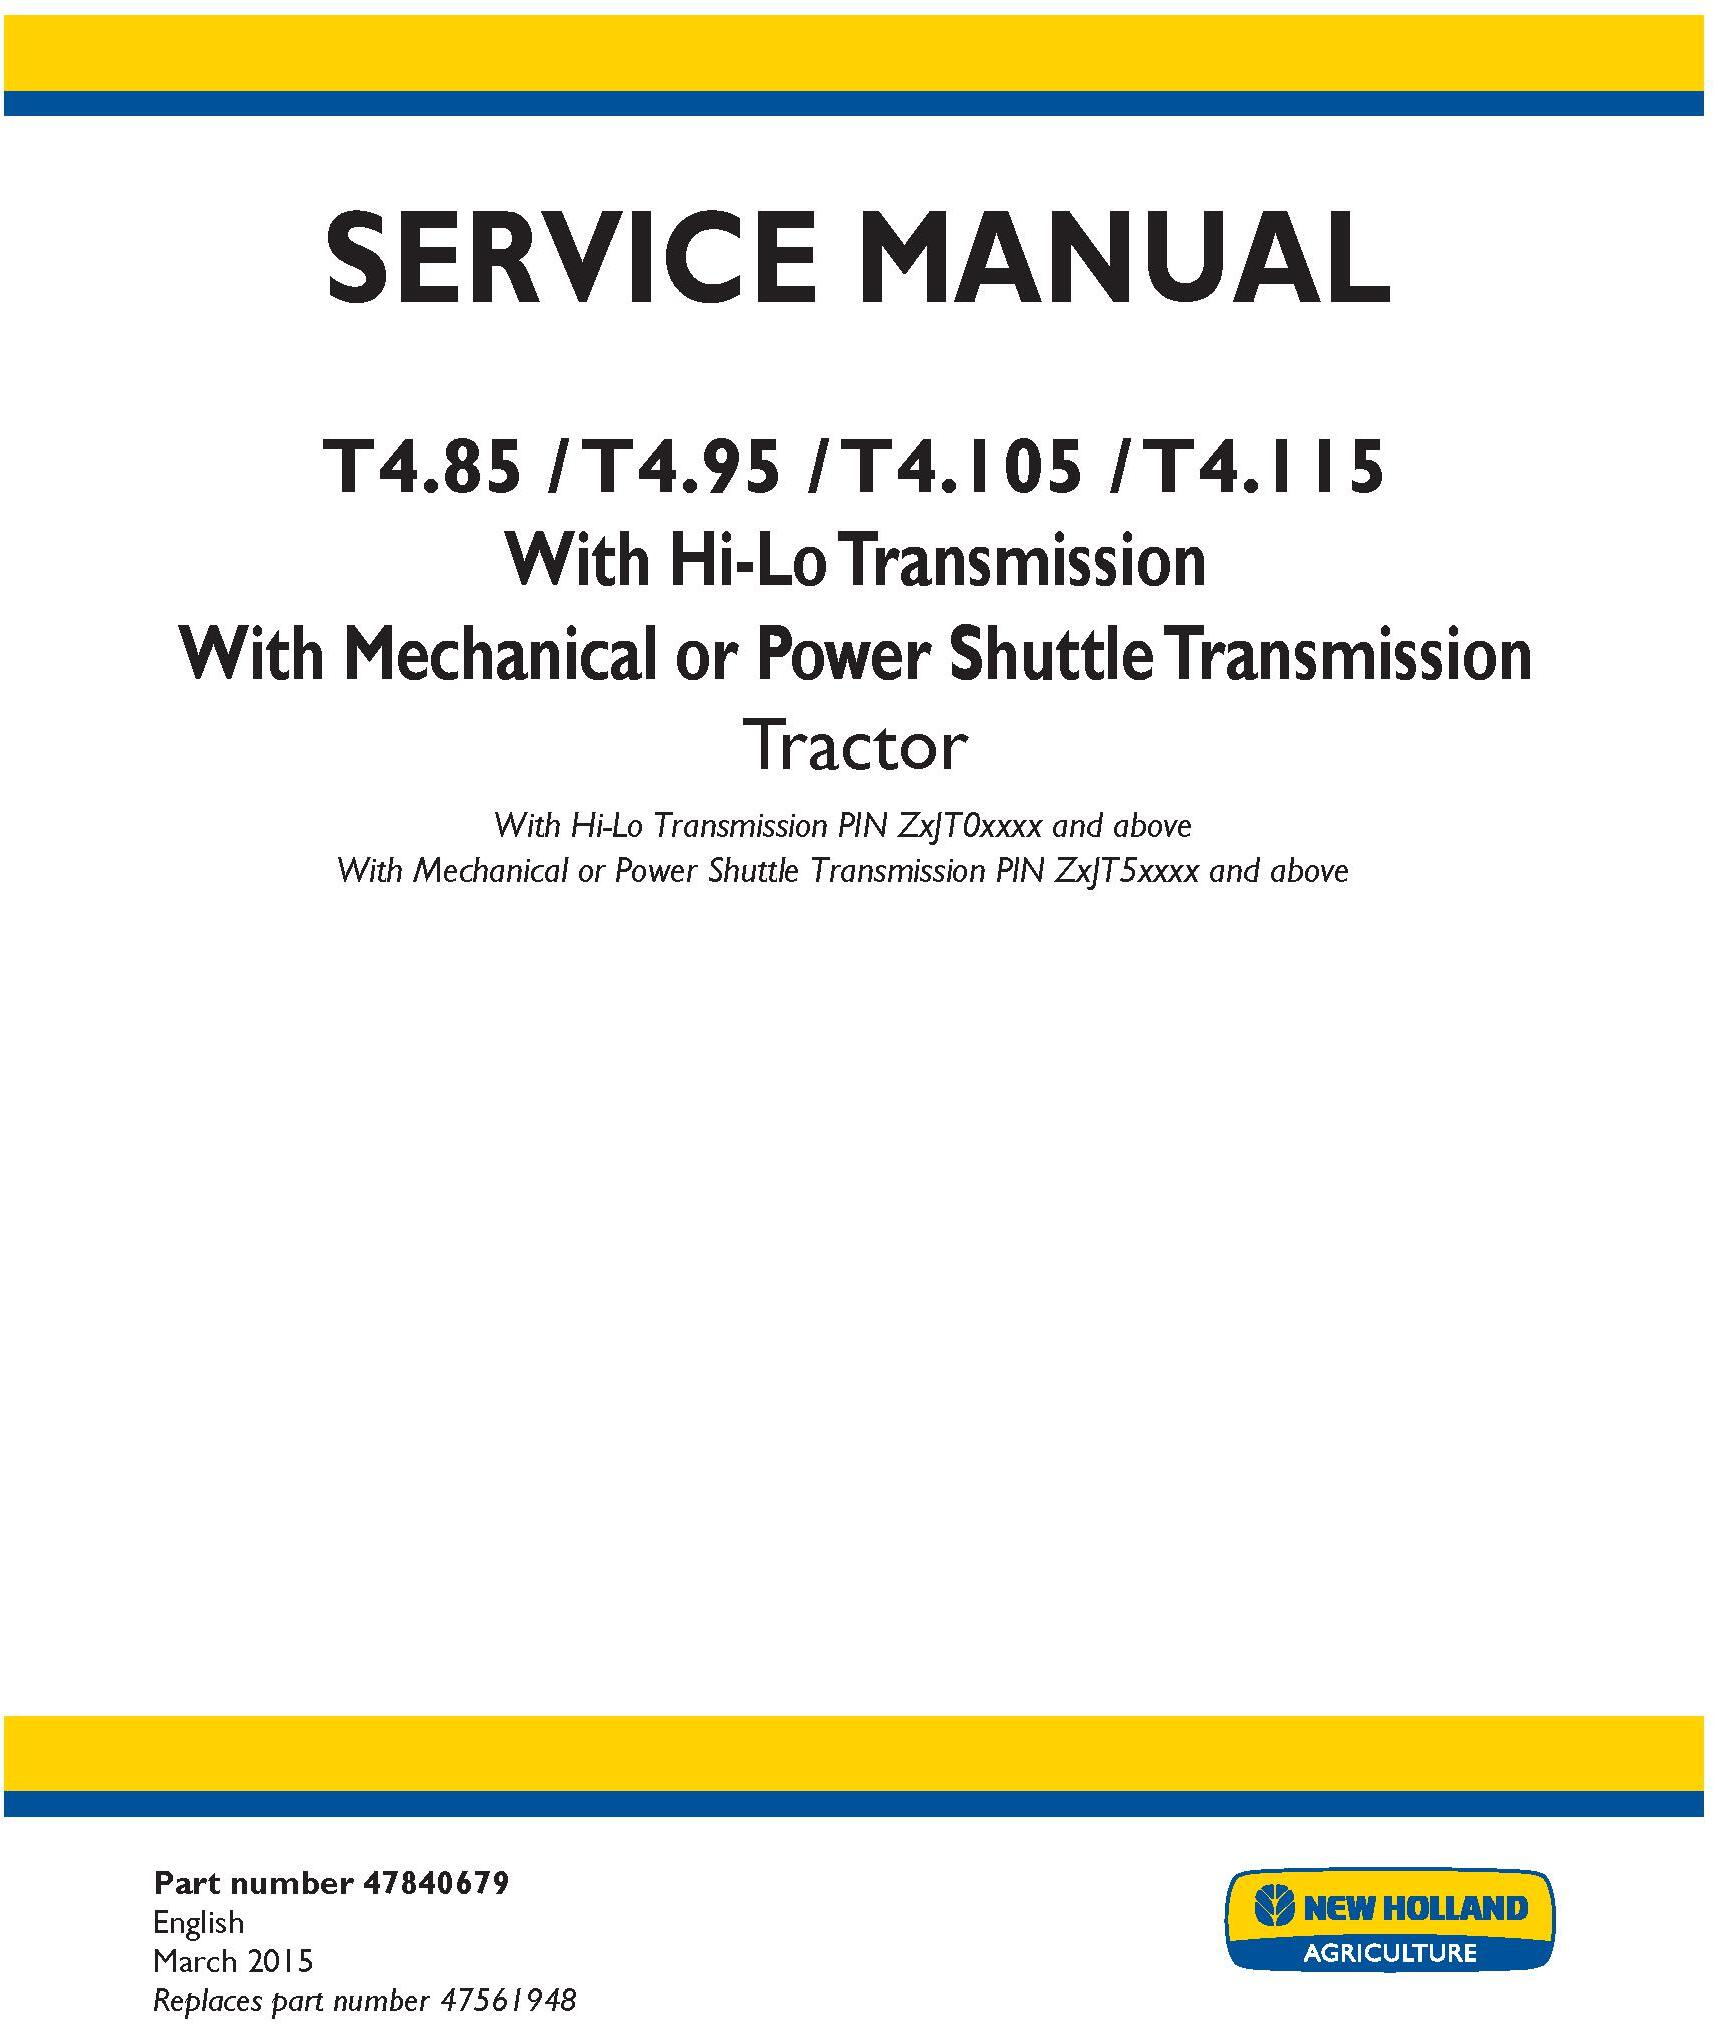 New Holland T4.85, T4.95, T4.105, T4.115 Tractor Complete Service Manual (North America) - 19424